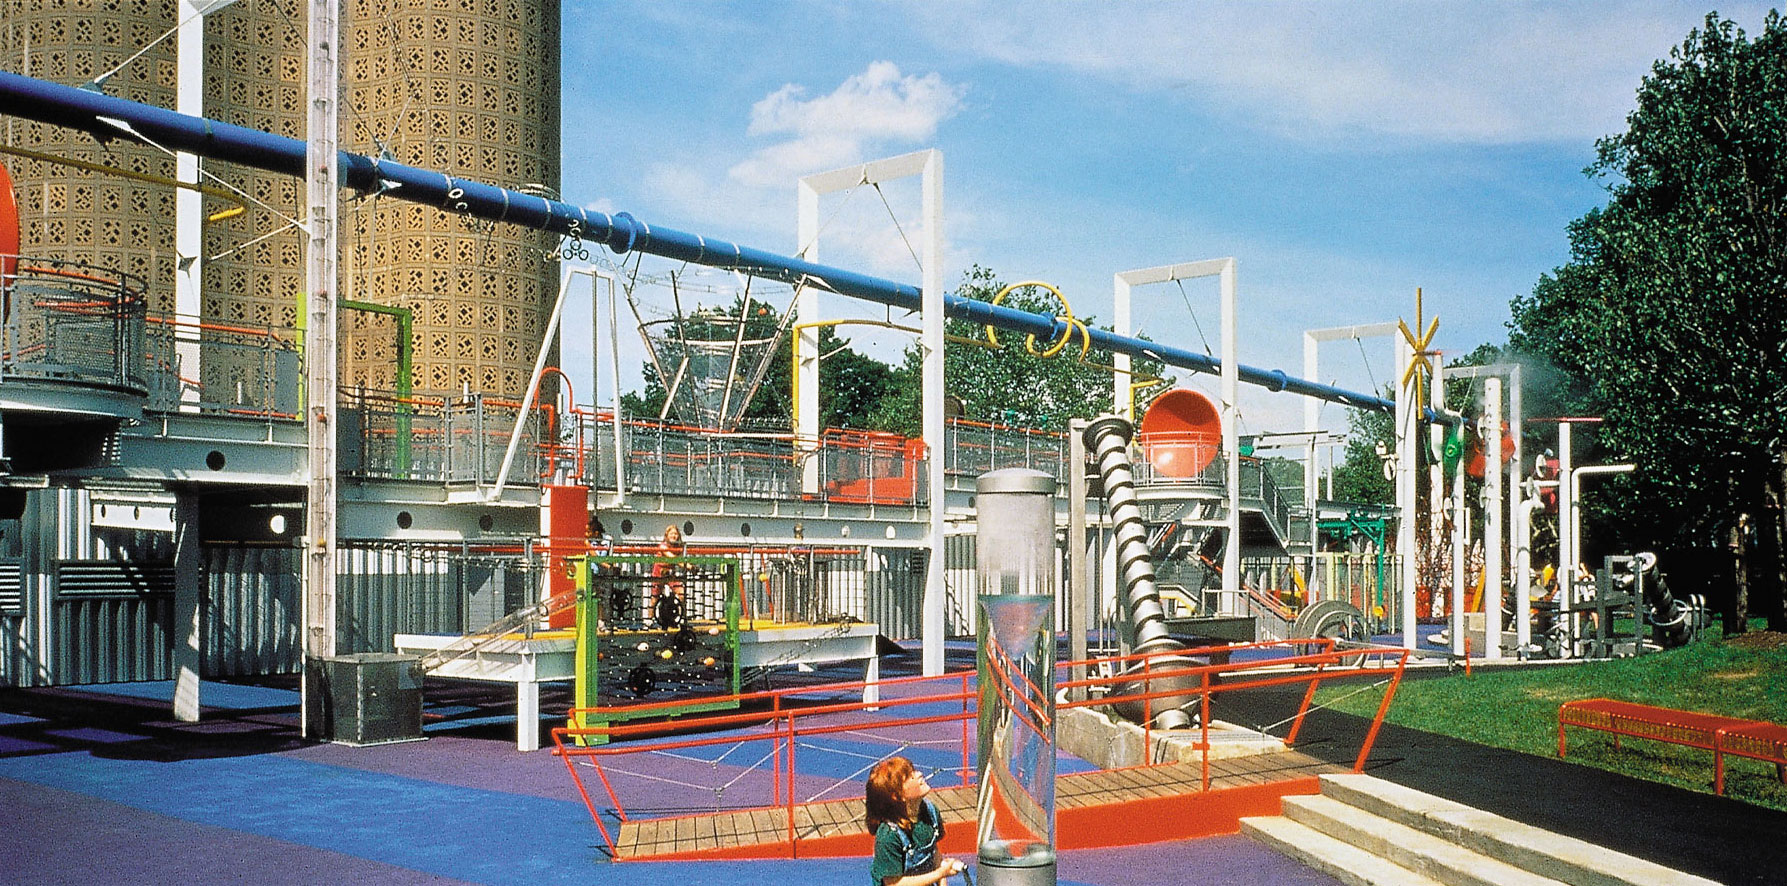 Project image 1 for Kidpower! Science Playground, New York Hall of Science, Queens